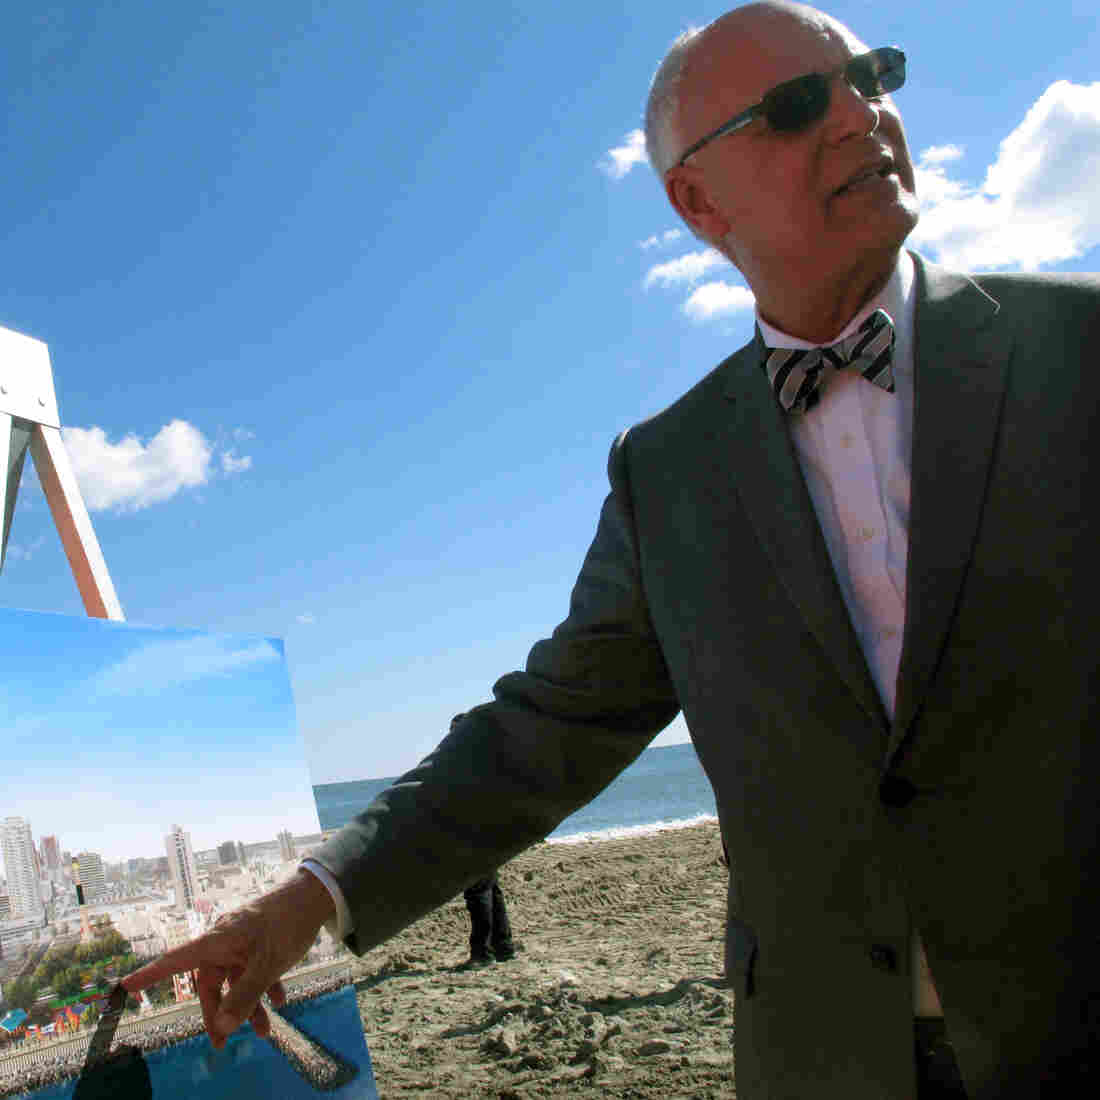 Atlantic City Faces Financial Collapse, Cringes At State Takeover